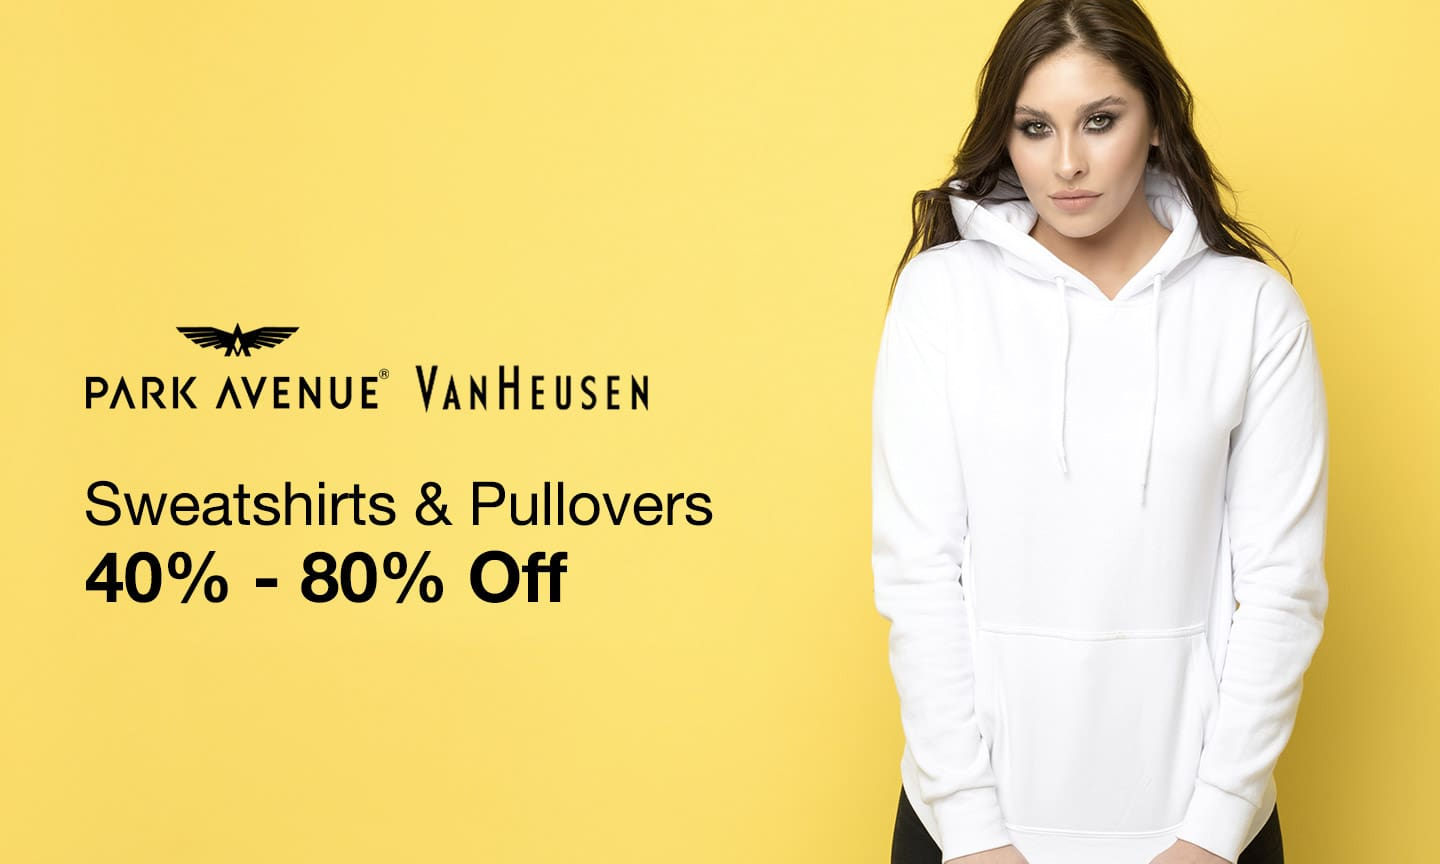 Sweatshirts and Pullover   40-80% Off